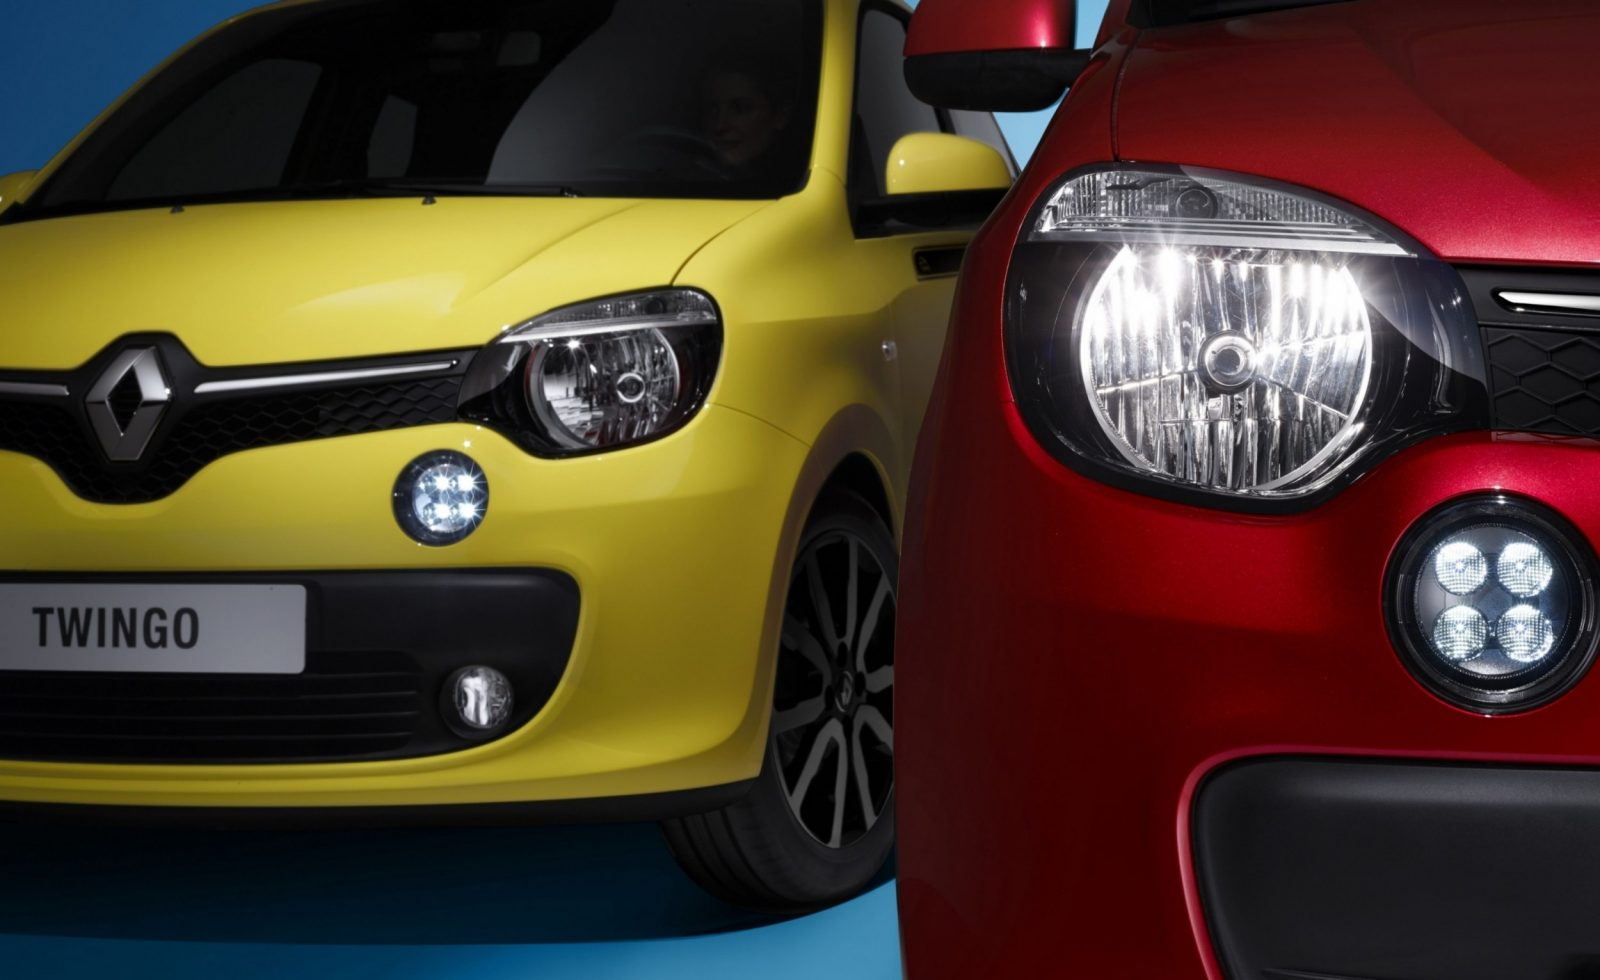 All-New Renault Twingo Packs Rear Engine, Four Doors and Cute New Style 7